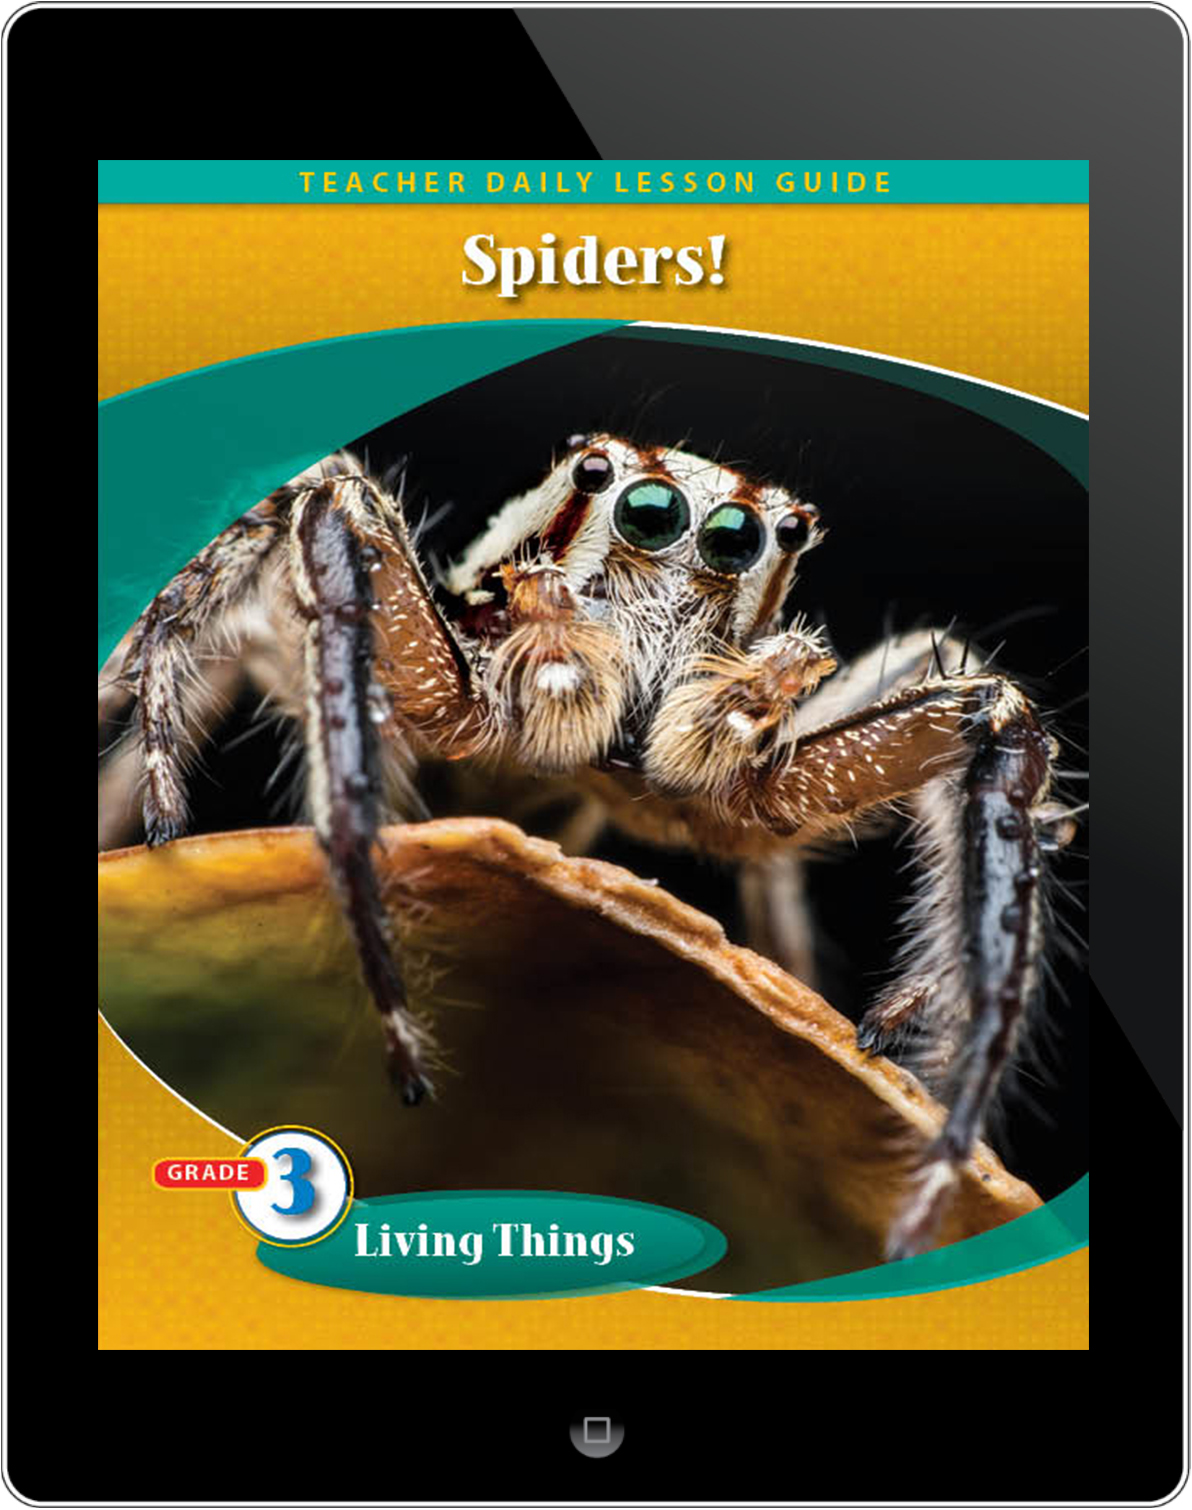 Pathways2.0 Grade 3 Living Things Unit: Grow With Me Spider Daily Lesson Guide 5 Yr License